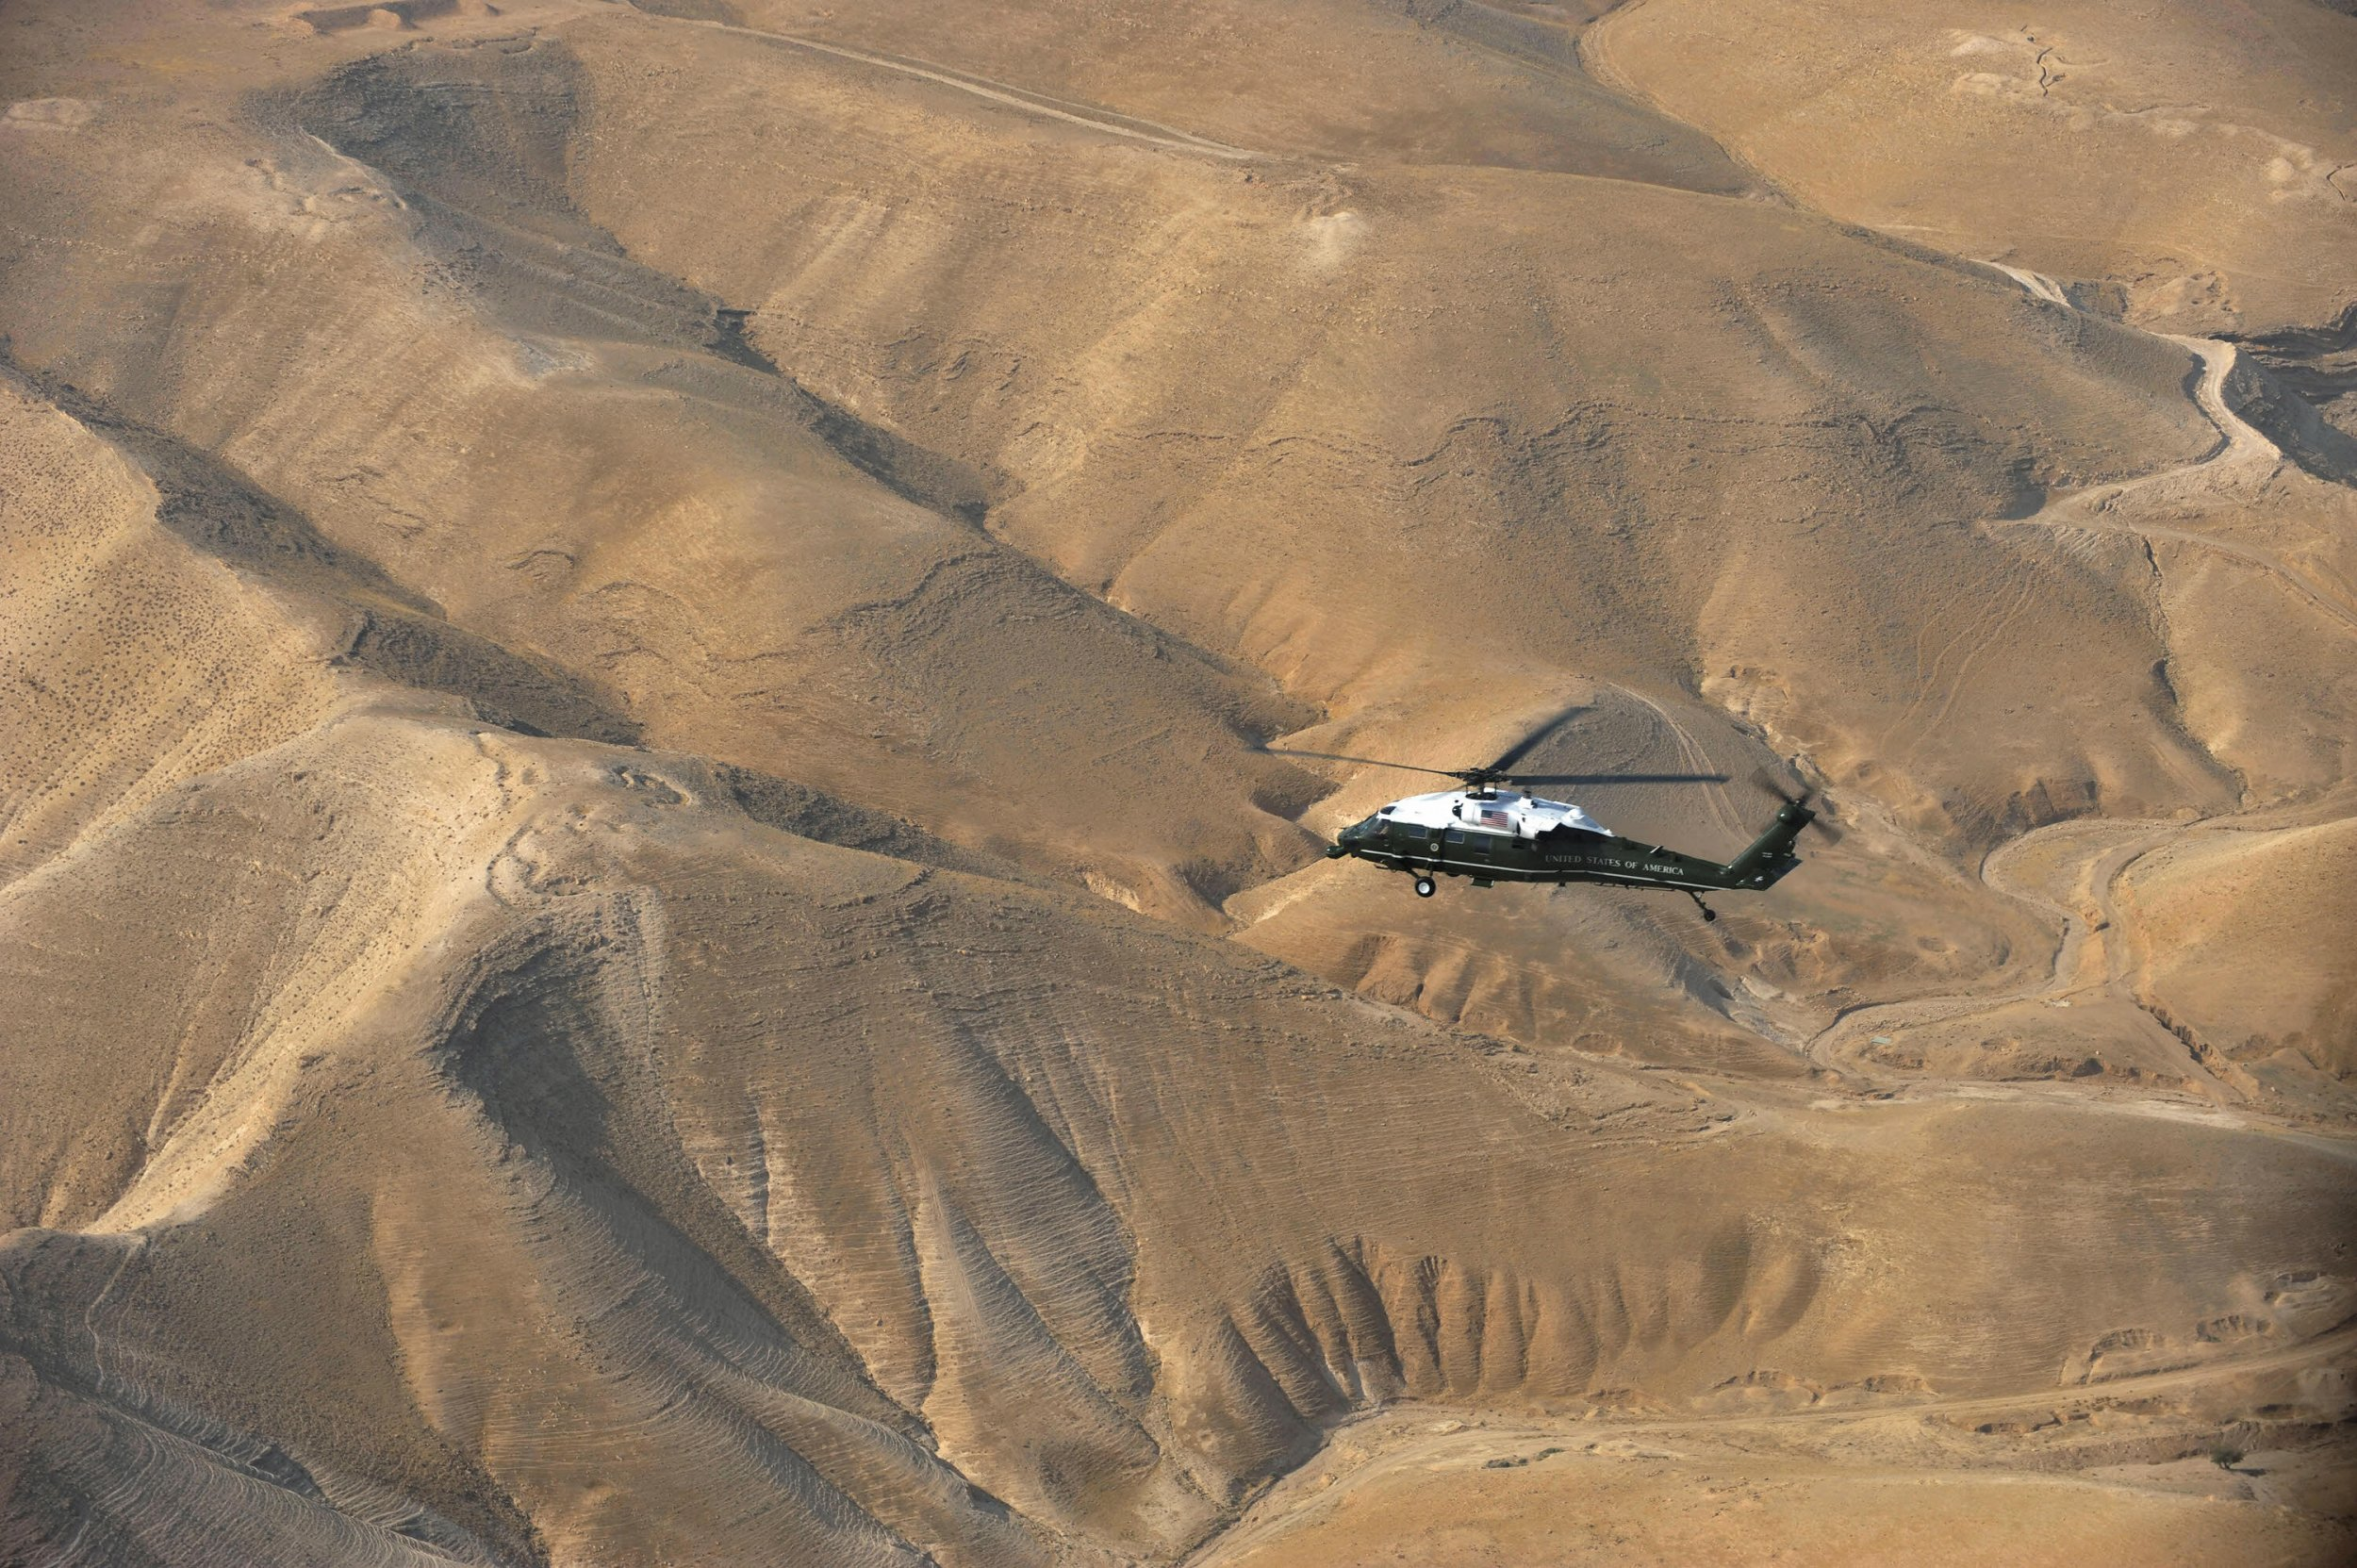 Trump Cancels Visit to Ancient Masada Site after Israel Refuses Helicopter Landing: Trump canceled a planned speech at Masada after authorities told him that he could not land his helicopter on top of the UNESCO-listed site. Unlike G. W. Bush & Bill Clinton, Trump declined to take the cable car up.